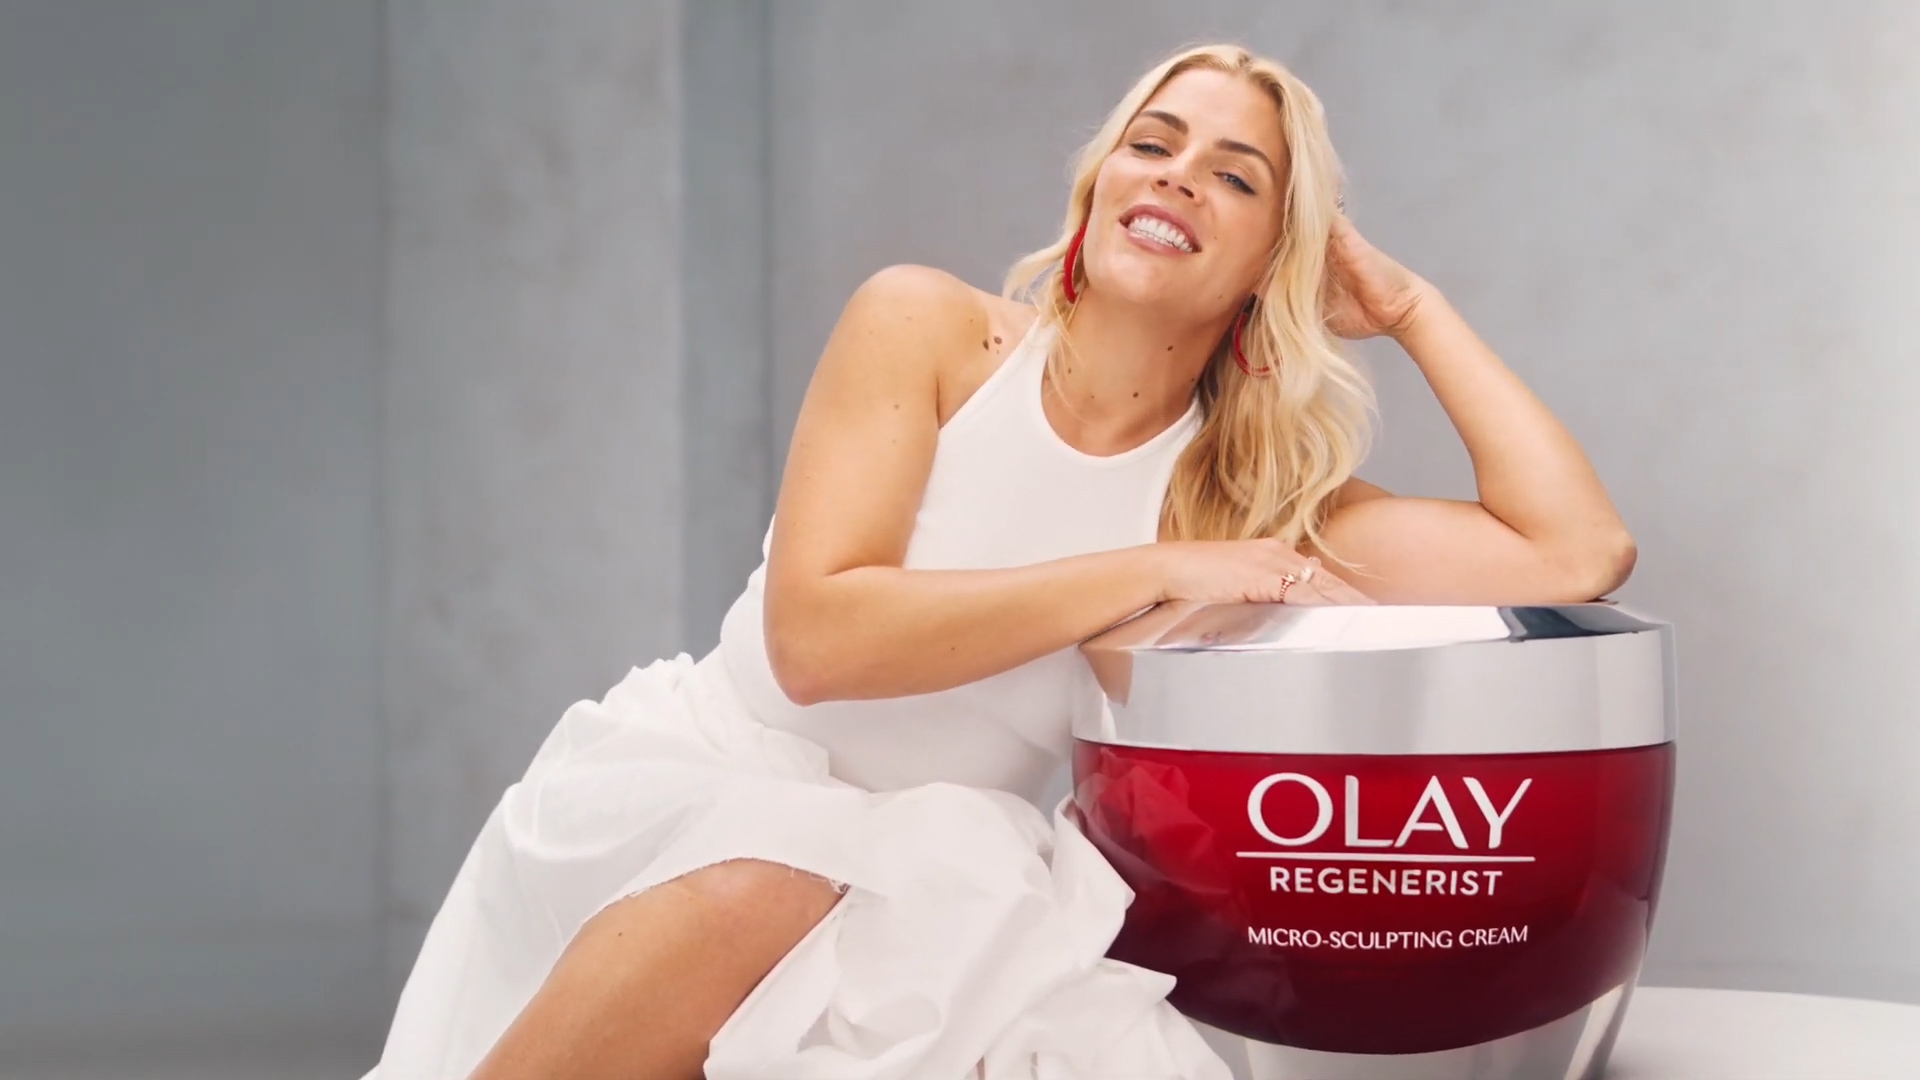 Olay - Busy Philipps' Skin Is Confident